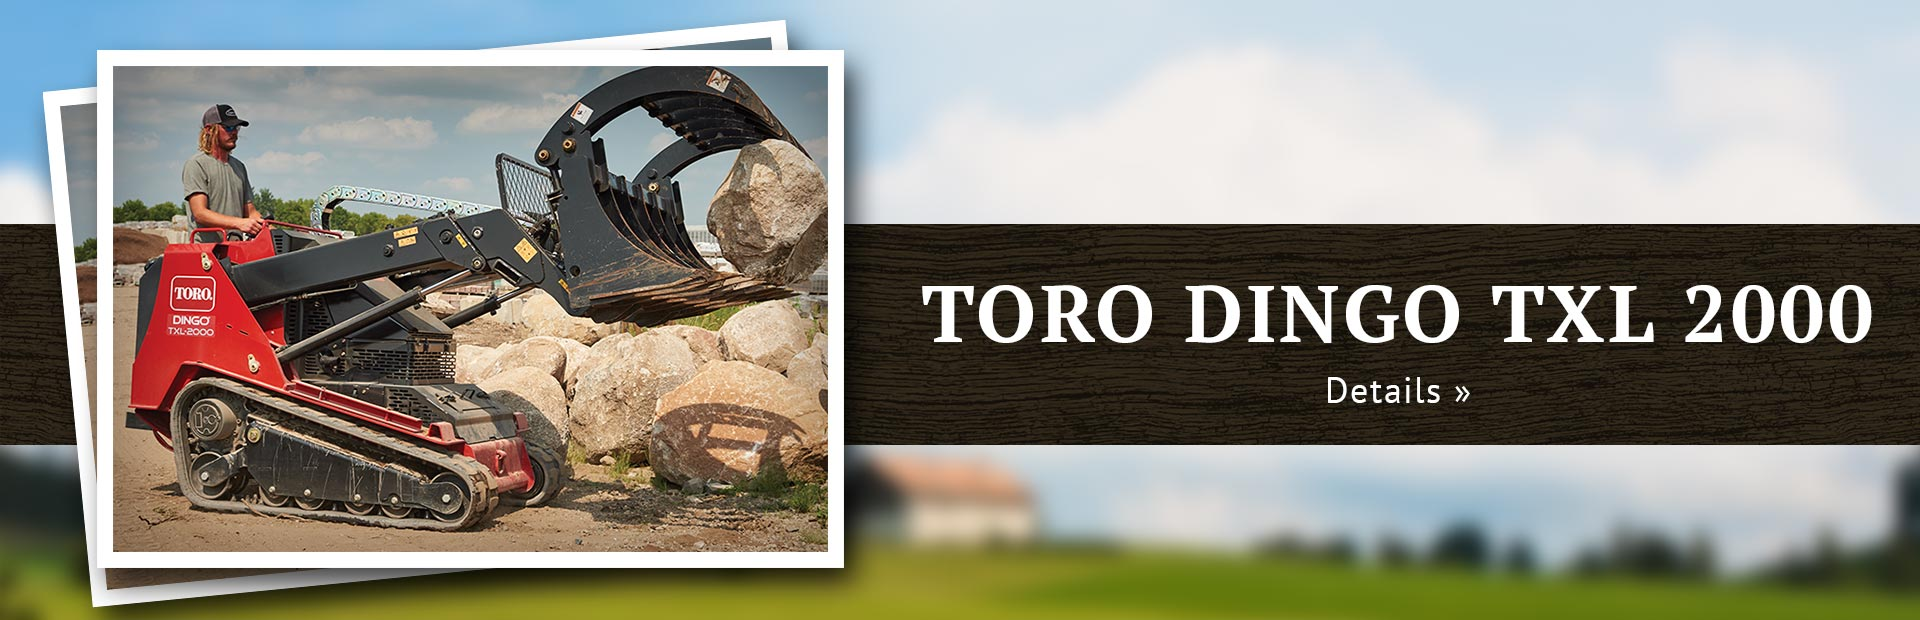 Toro Dingo TXL 2000: Click here to view the models.